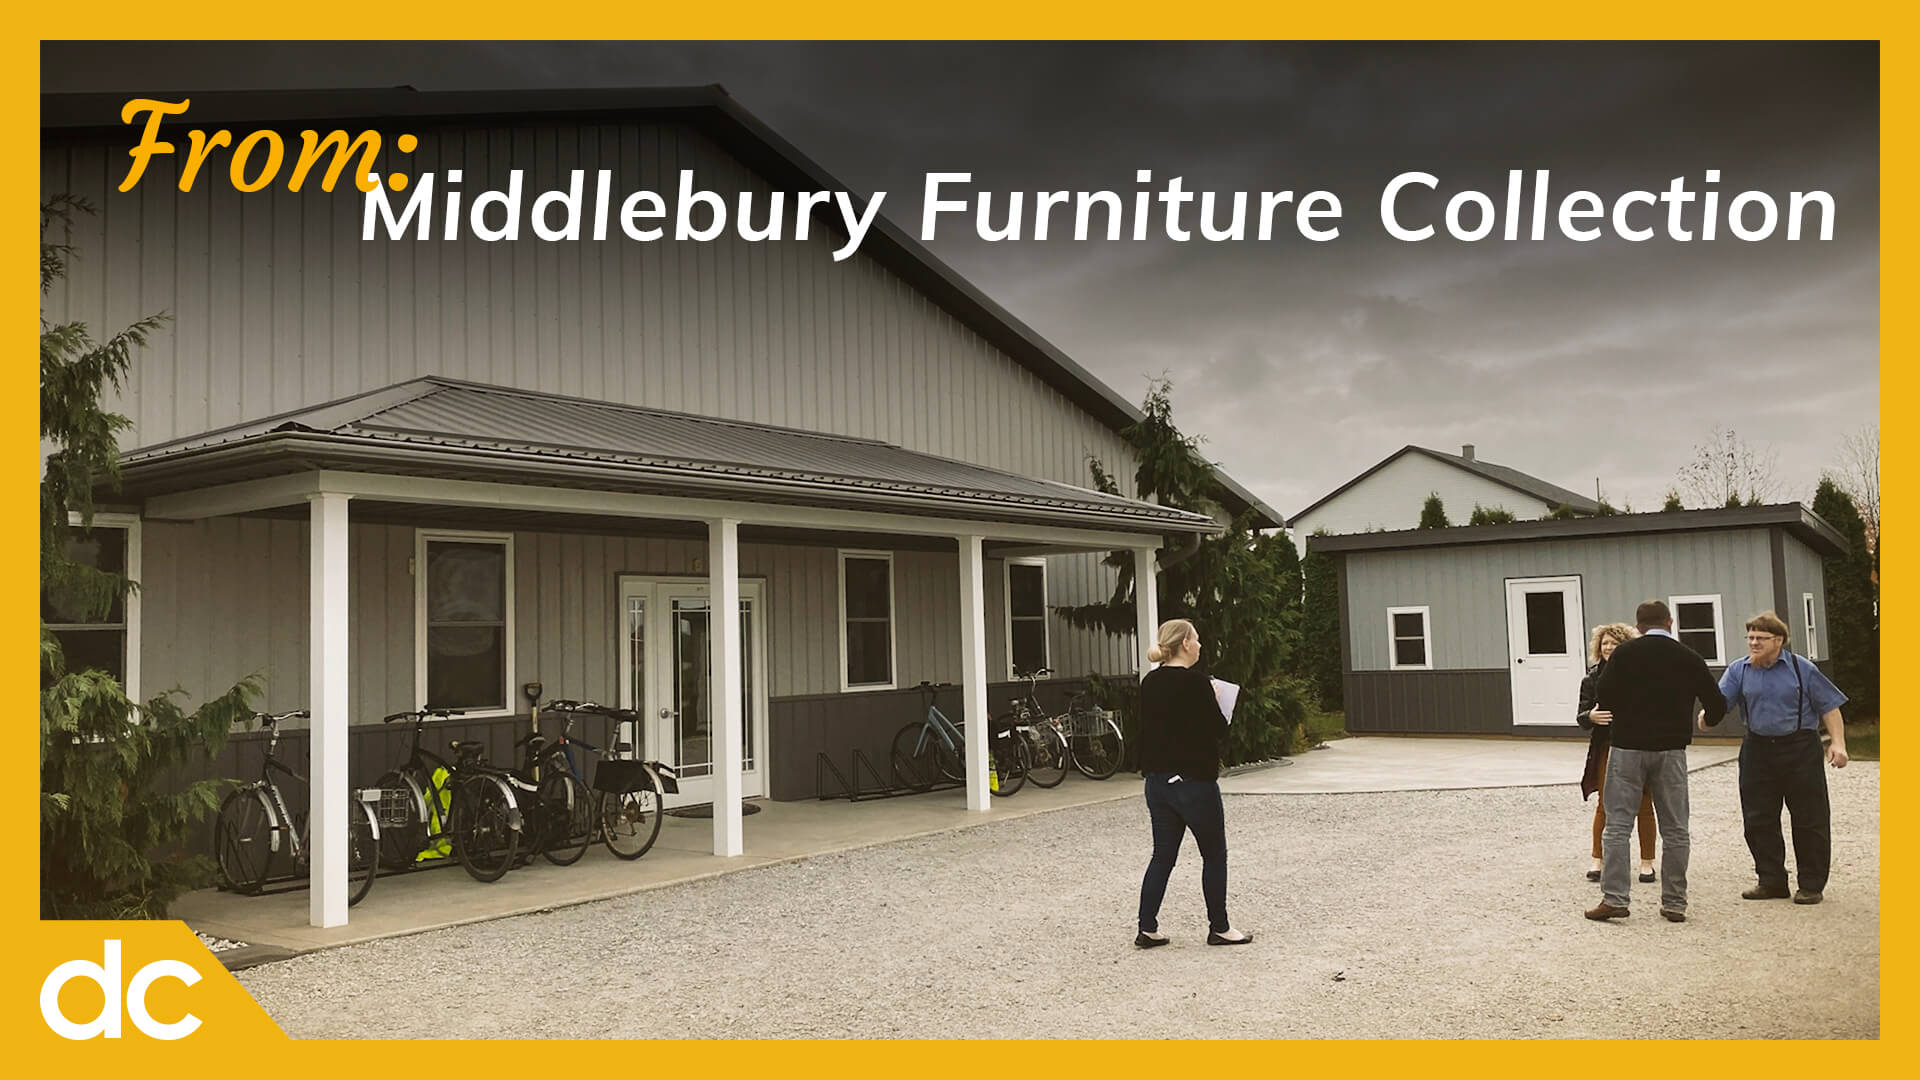 Your New Furniture from the Middlebury Furniture Collection